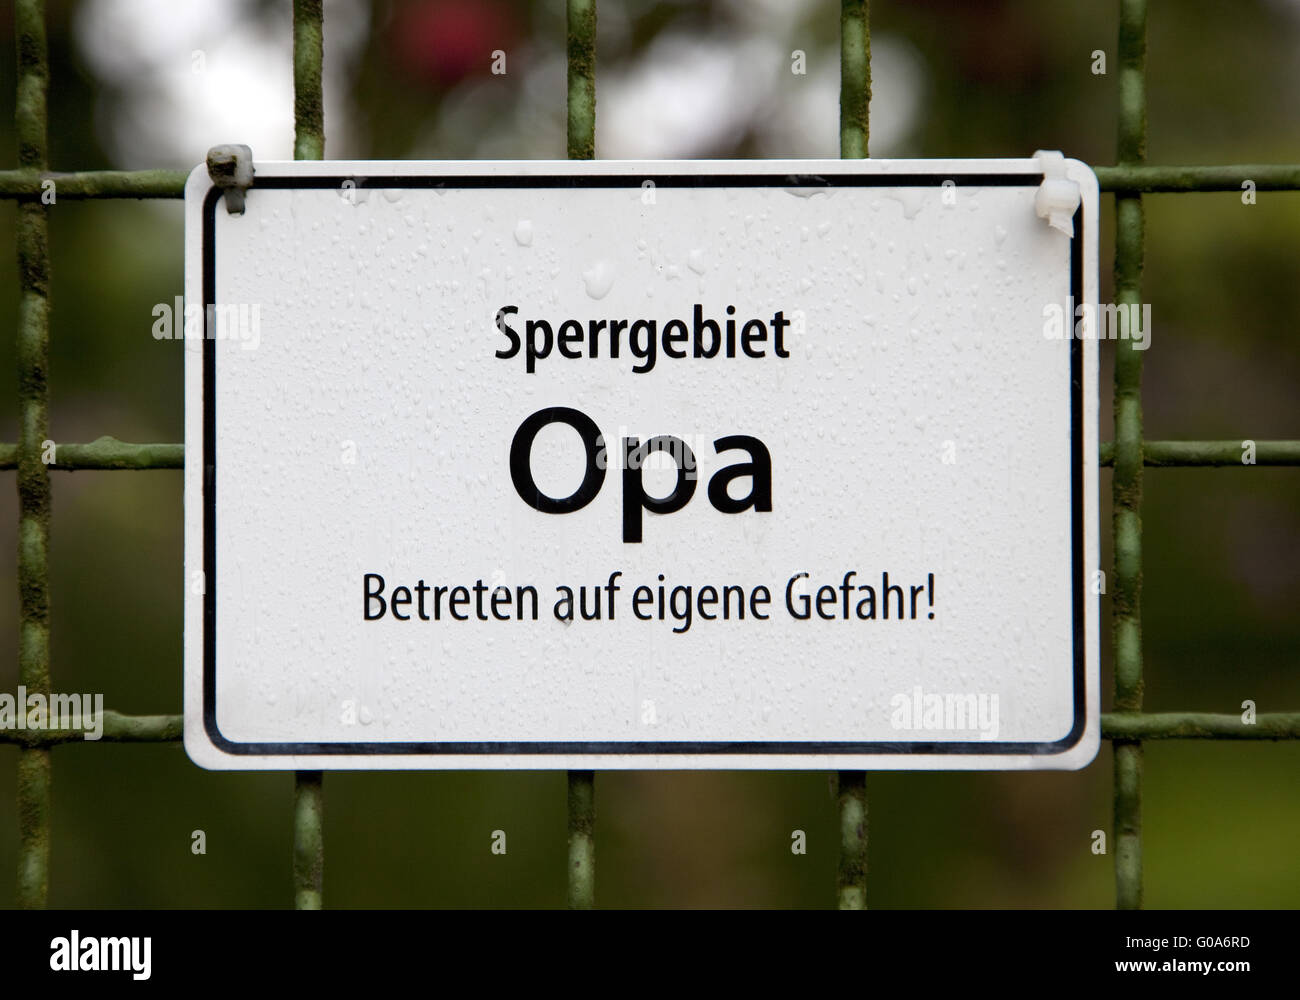 Sign restricted area grandpa, Alt Wetter, Germany. - Stock Image